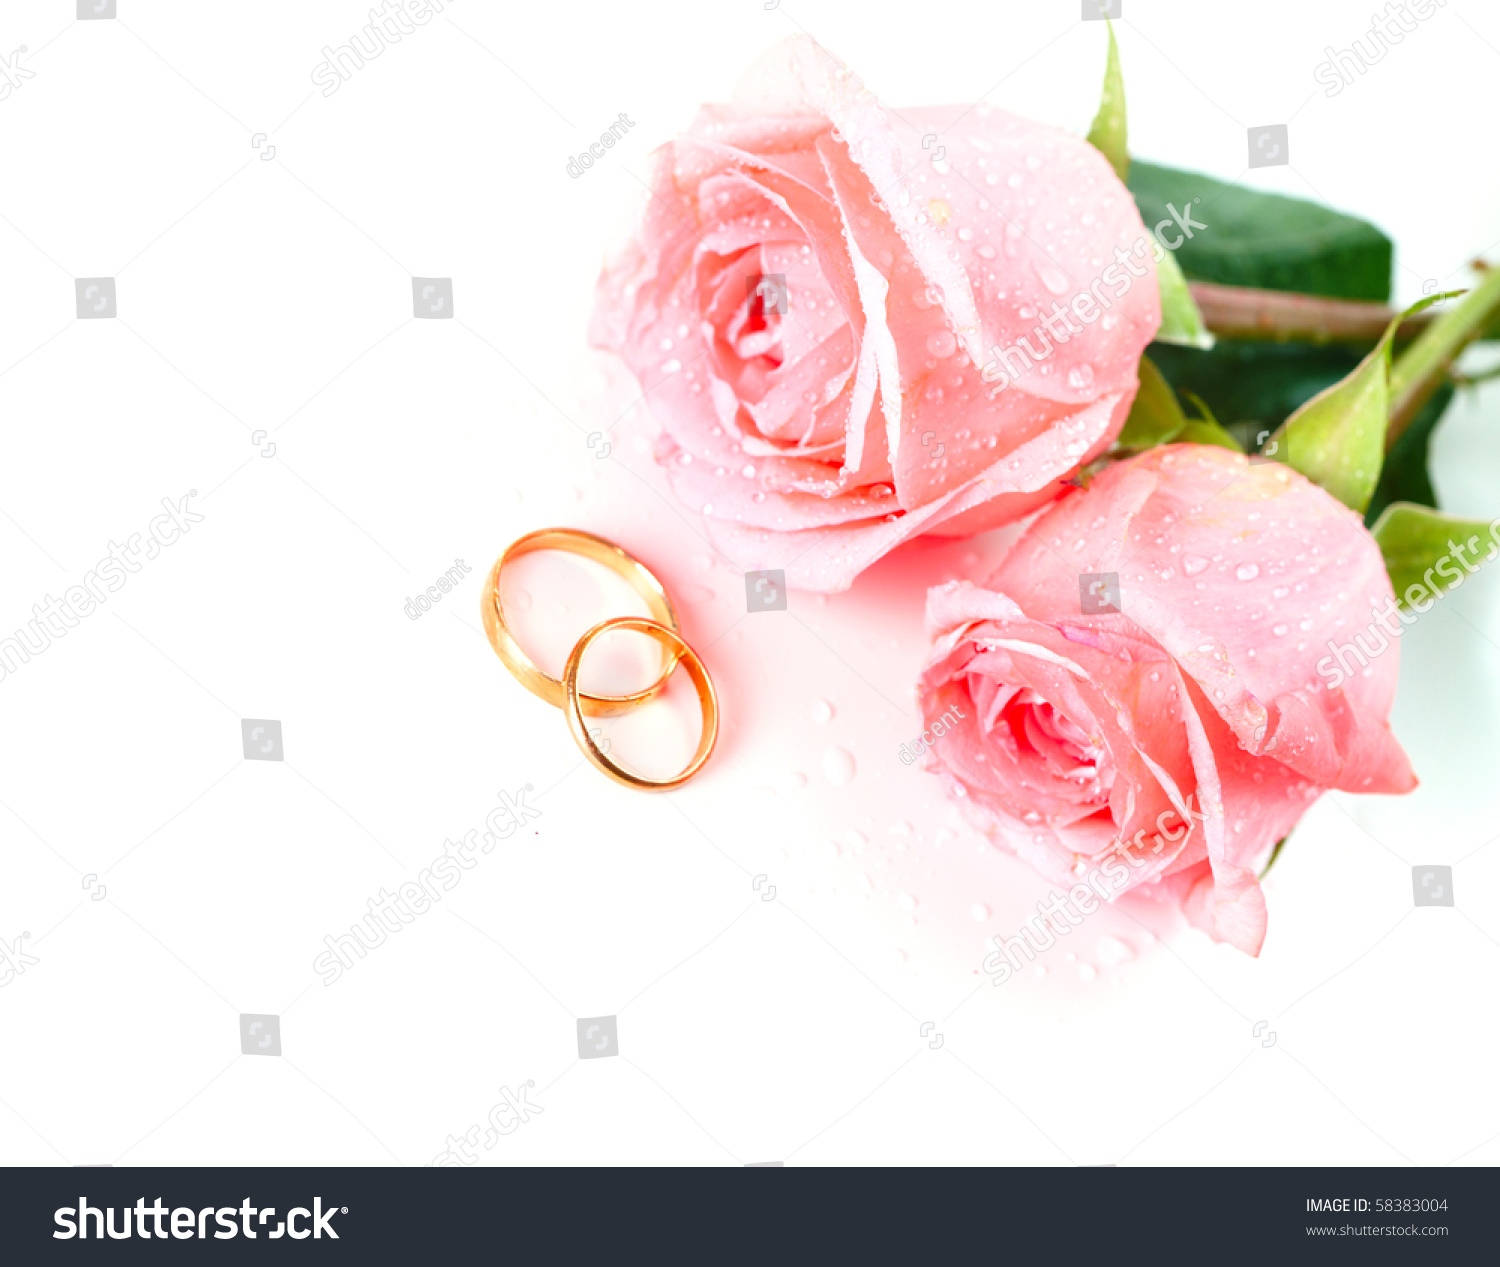 Roses Flowers Two Marriage Wedding Rings Stock Photo (100% Legal ...